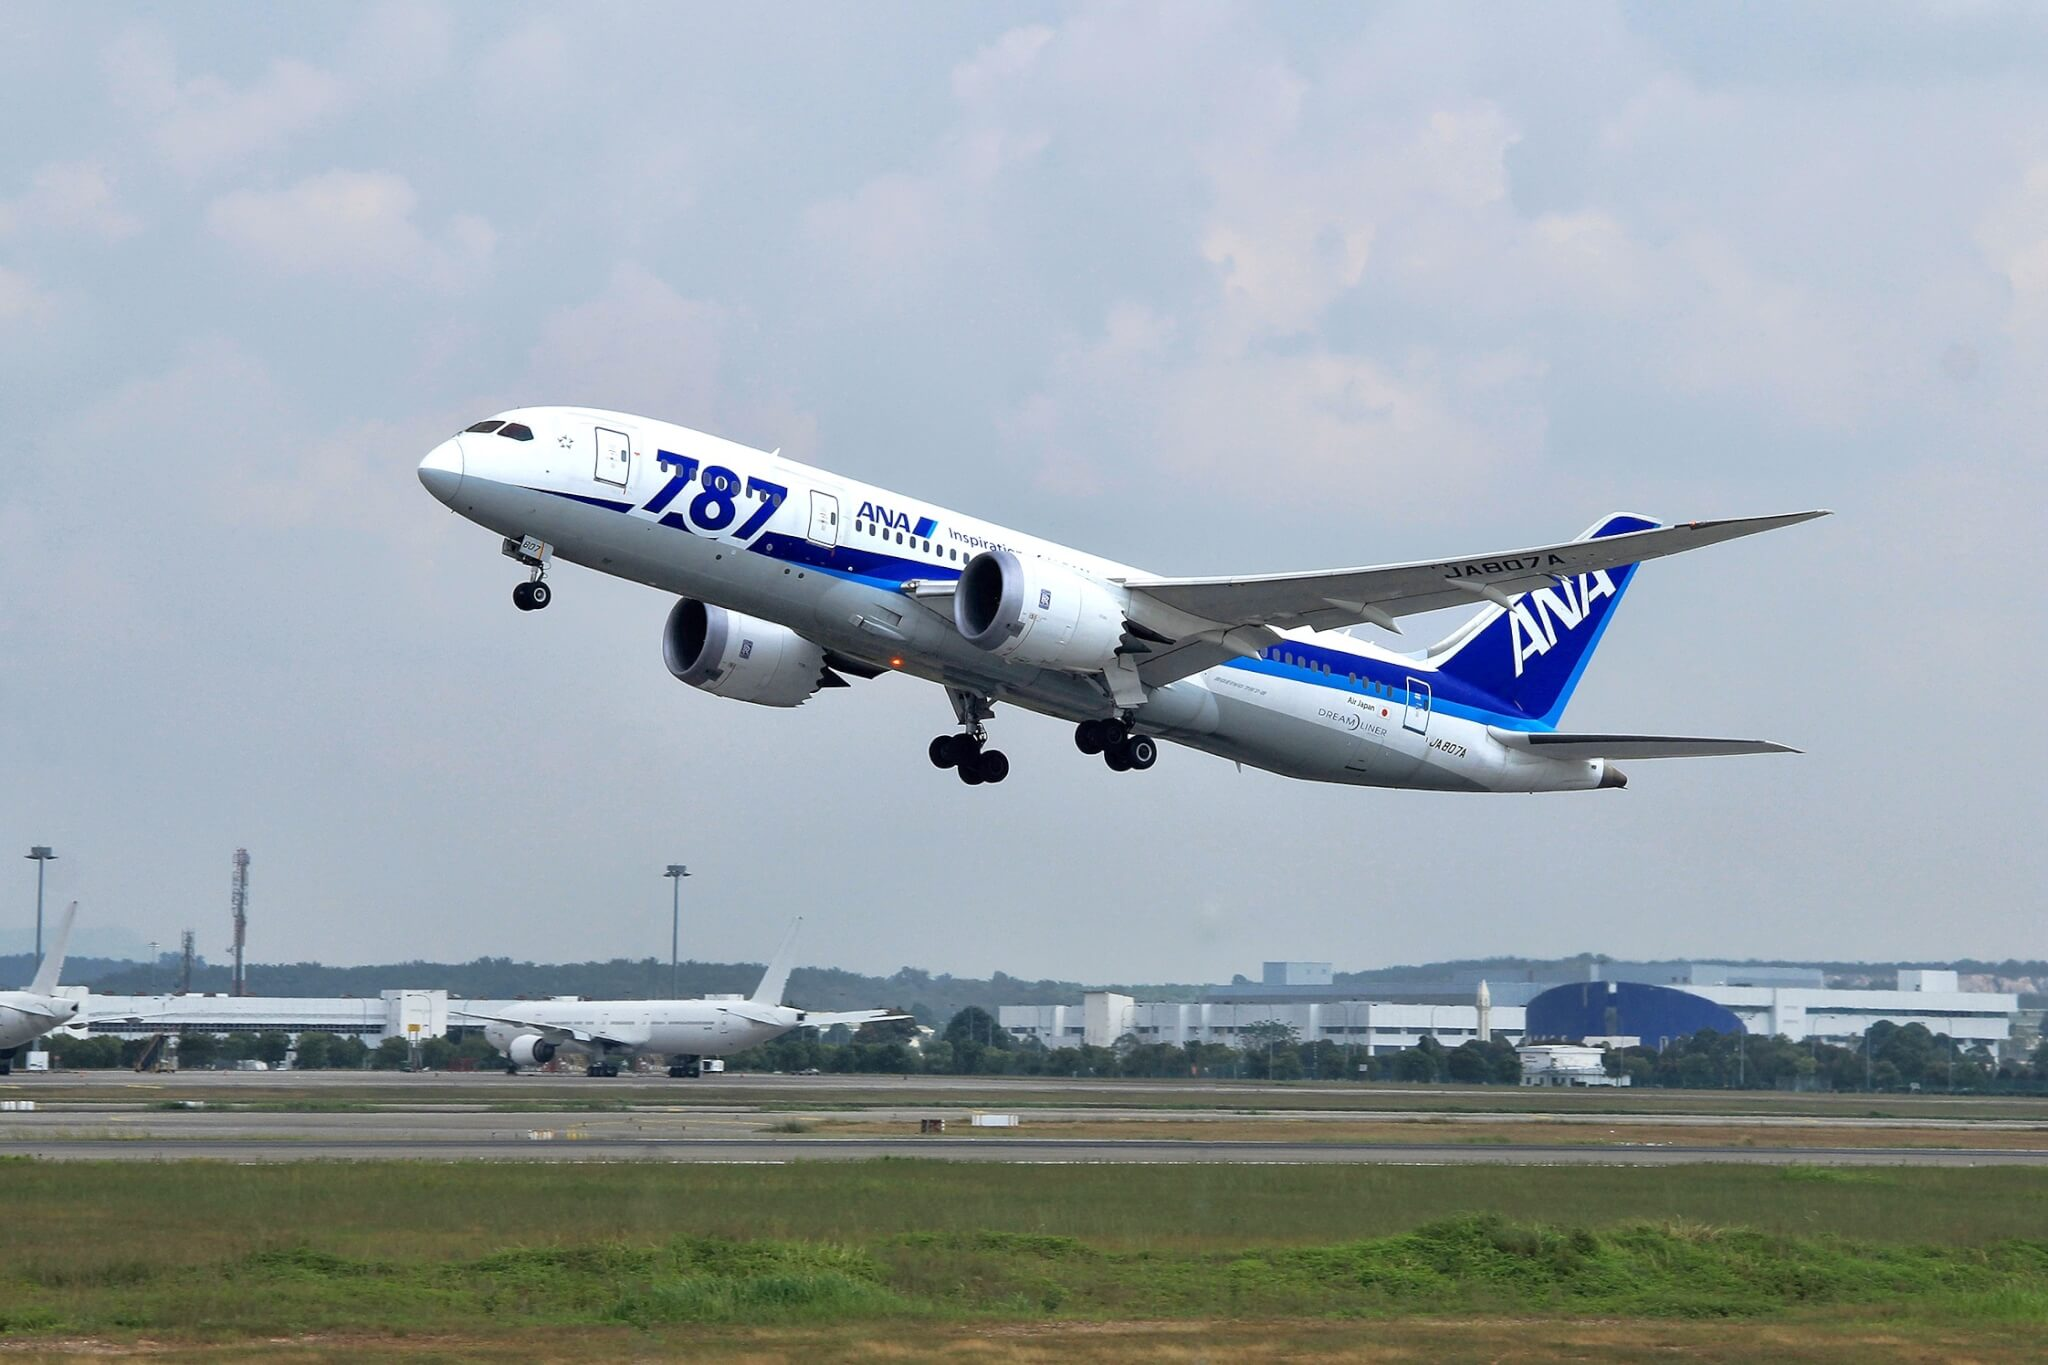 ANA boosts long-haul flying from Tokyo Haneda Airport